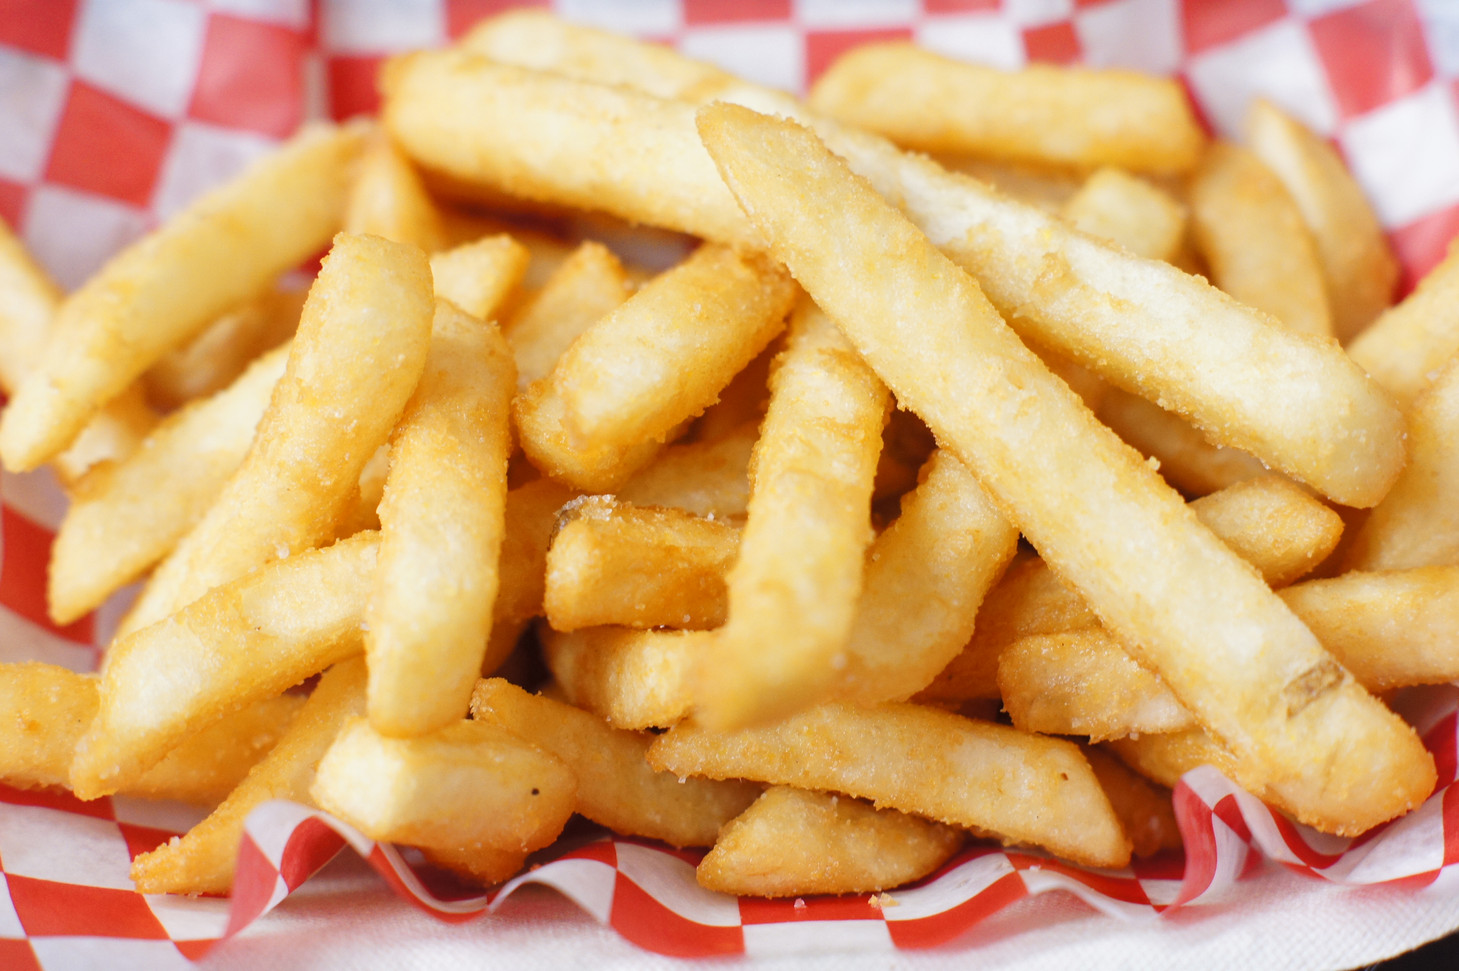 Crispy Coated Maritime Fries